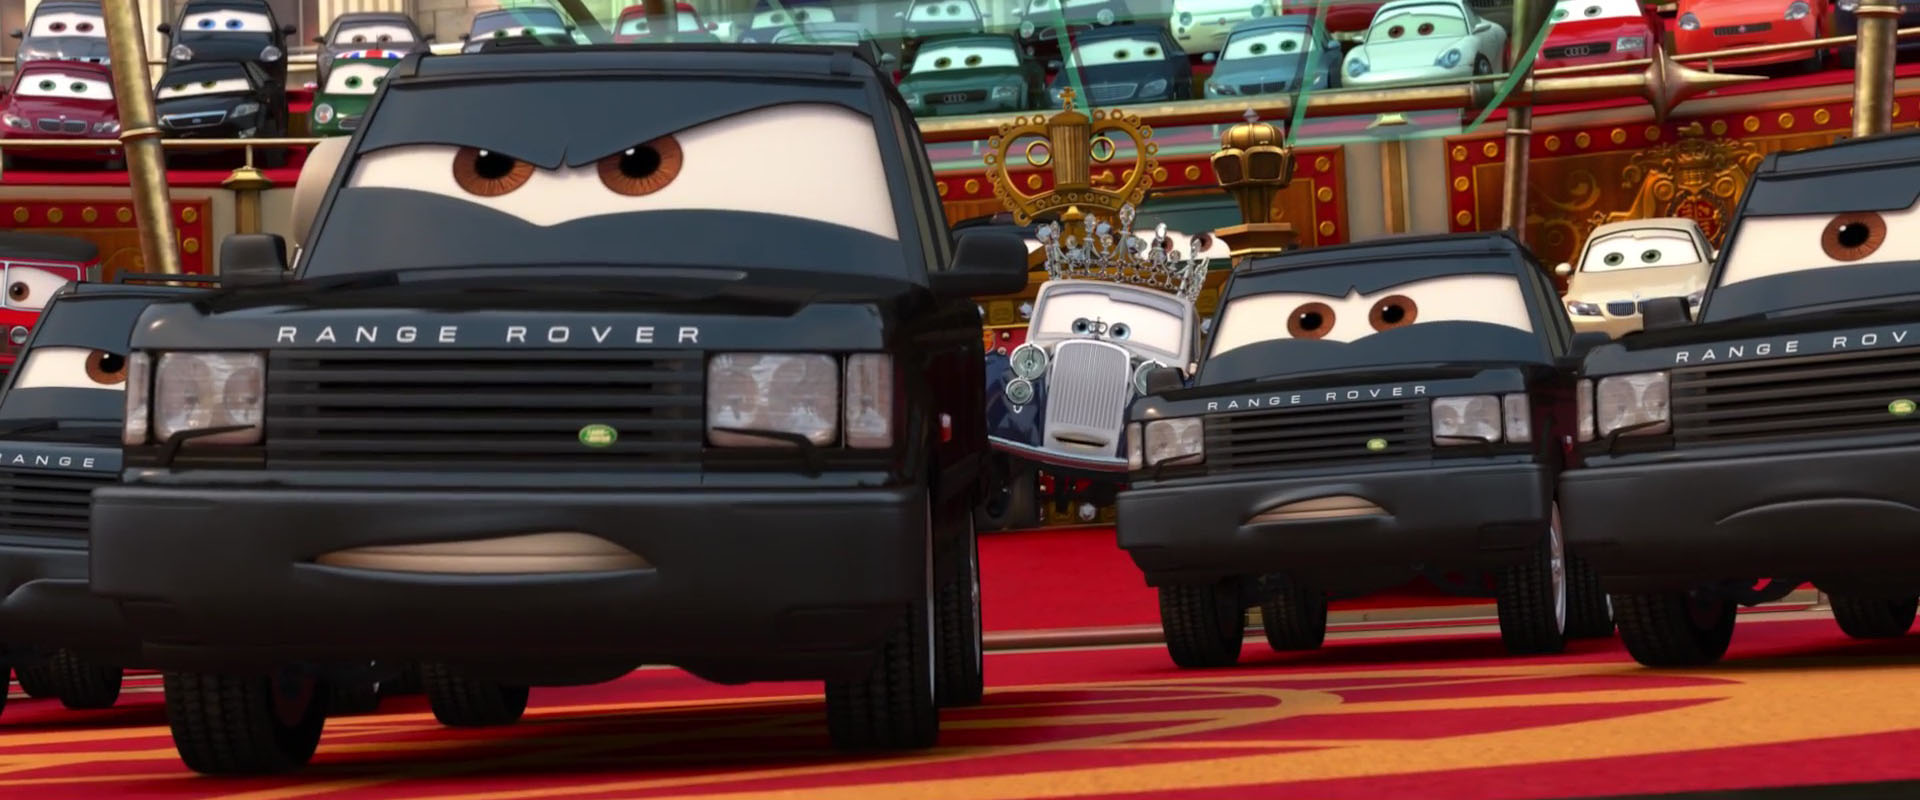 mike lorengine personnage character pixar disney cars 2